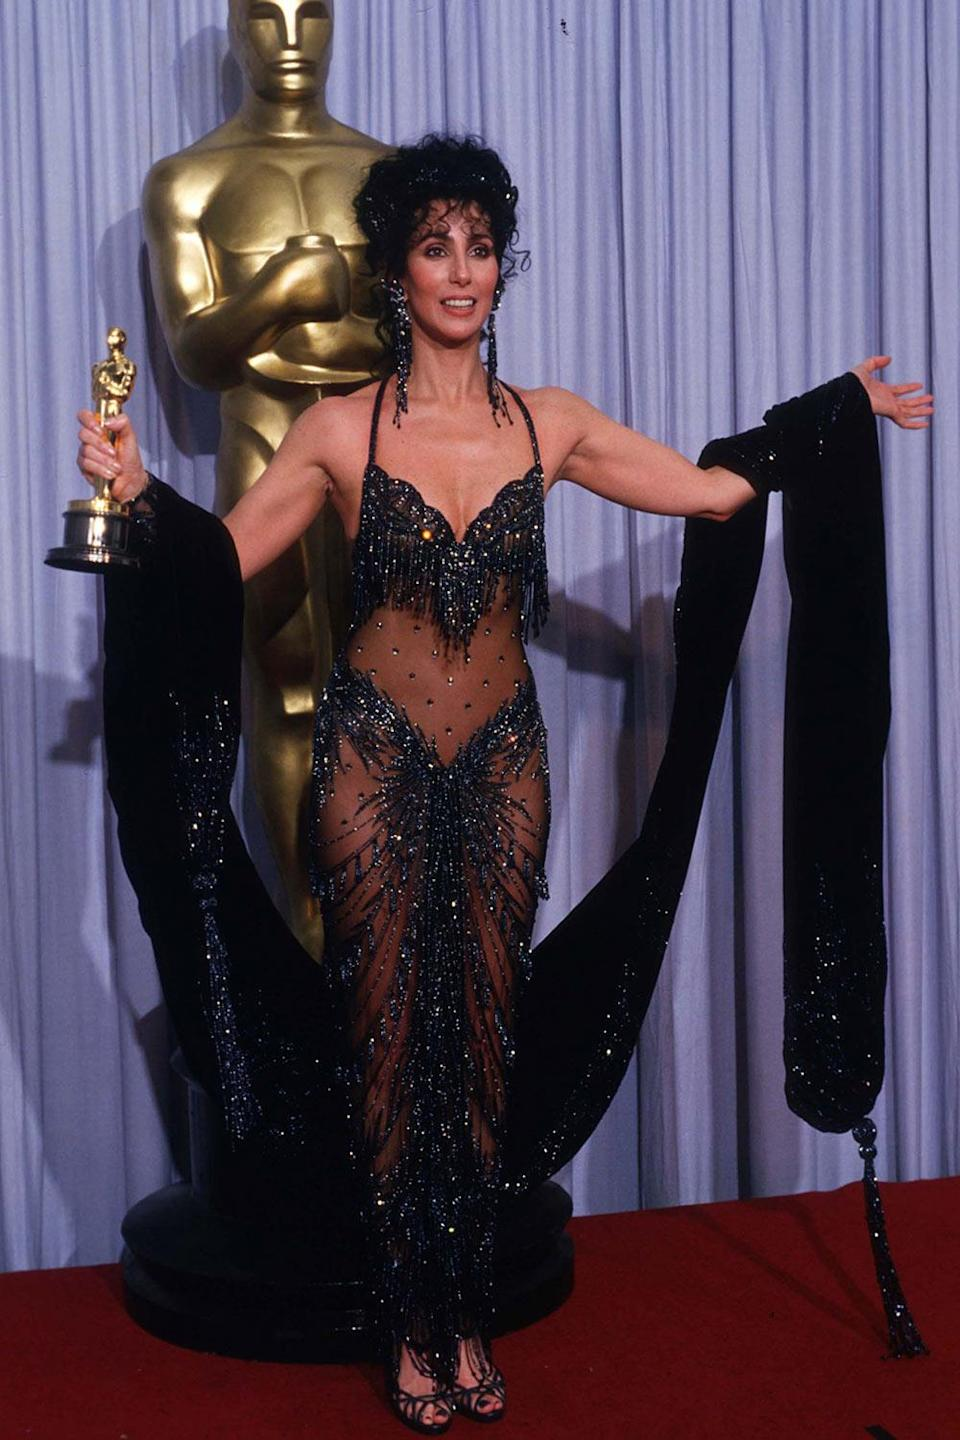 <p>... is look as good as Cher so that I can rock this dress that she wore to the Academy Awards in 1988. She won that year for her role in <i>Moonstruck</i>. </p>